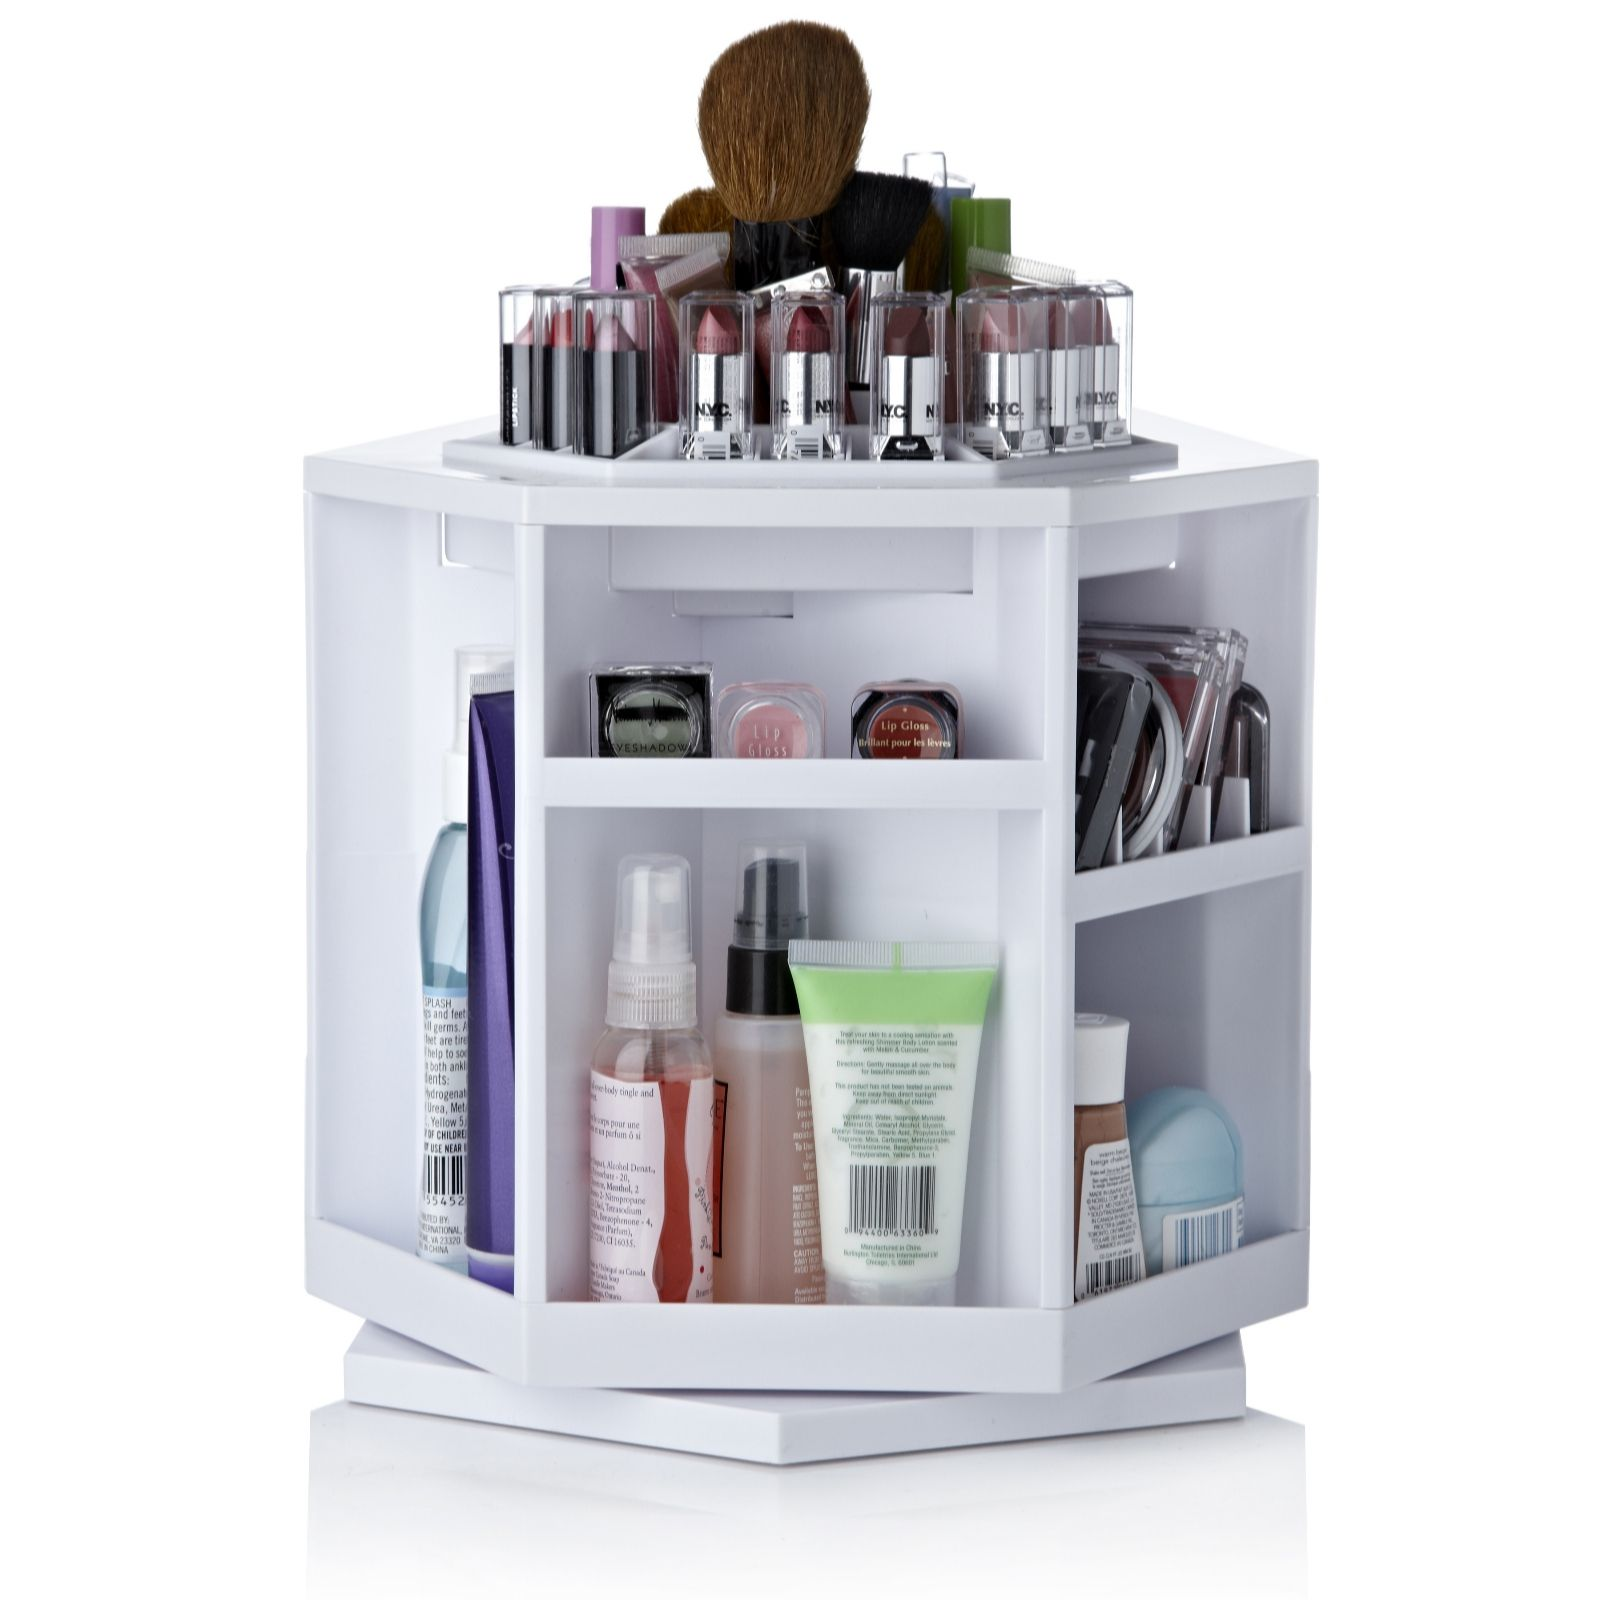 5 super handy makeup storage ideas shinyshiny - Rangement acrylique maquillage pas cher ...